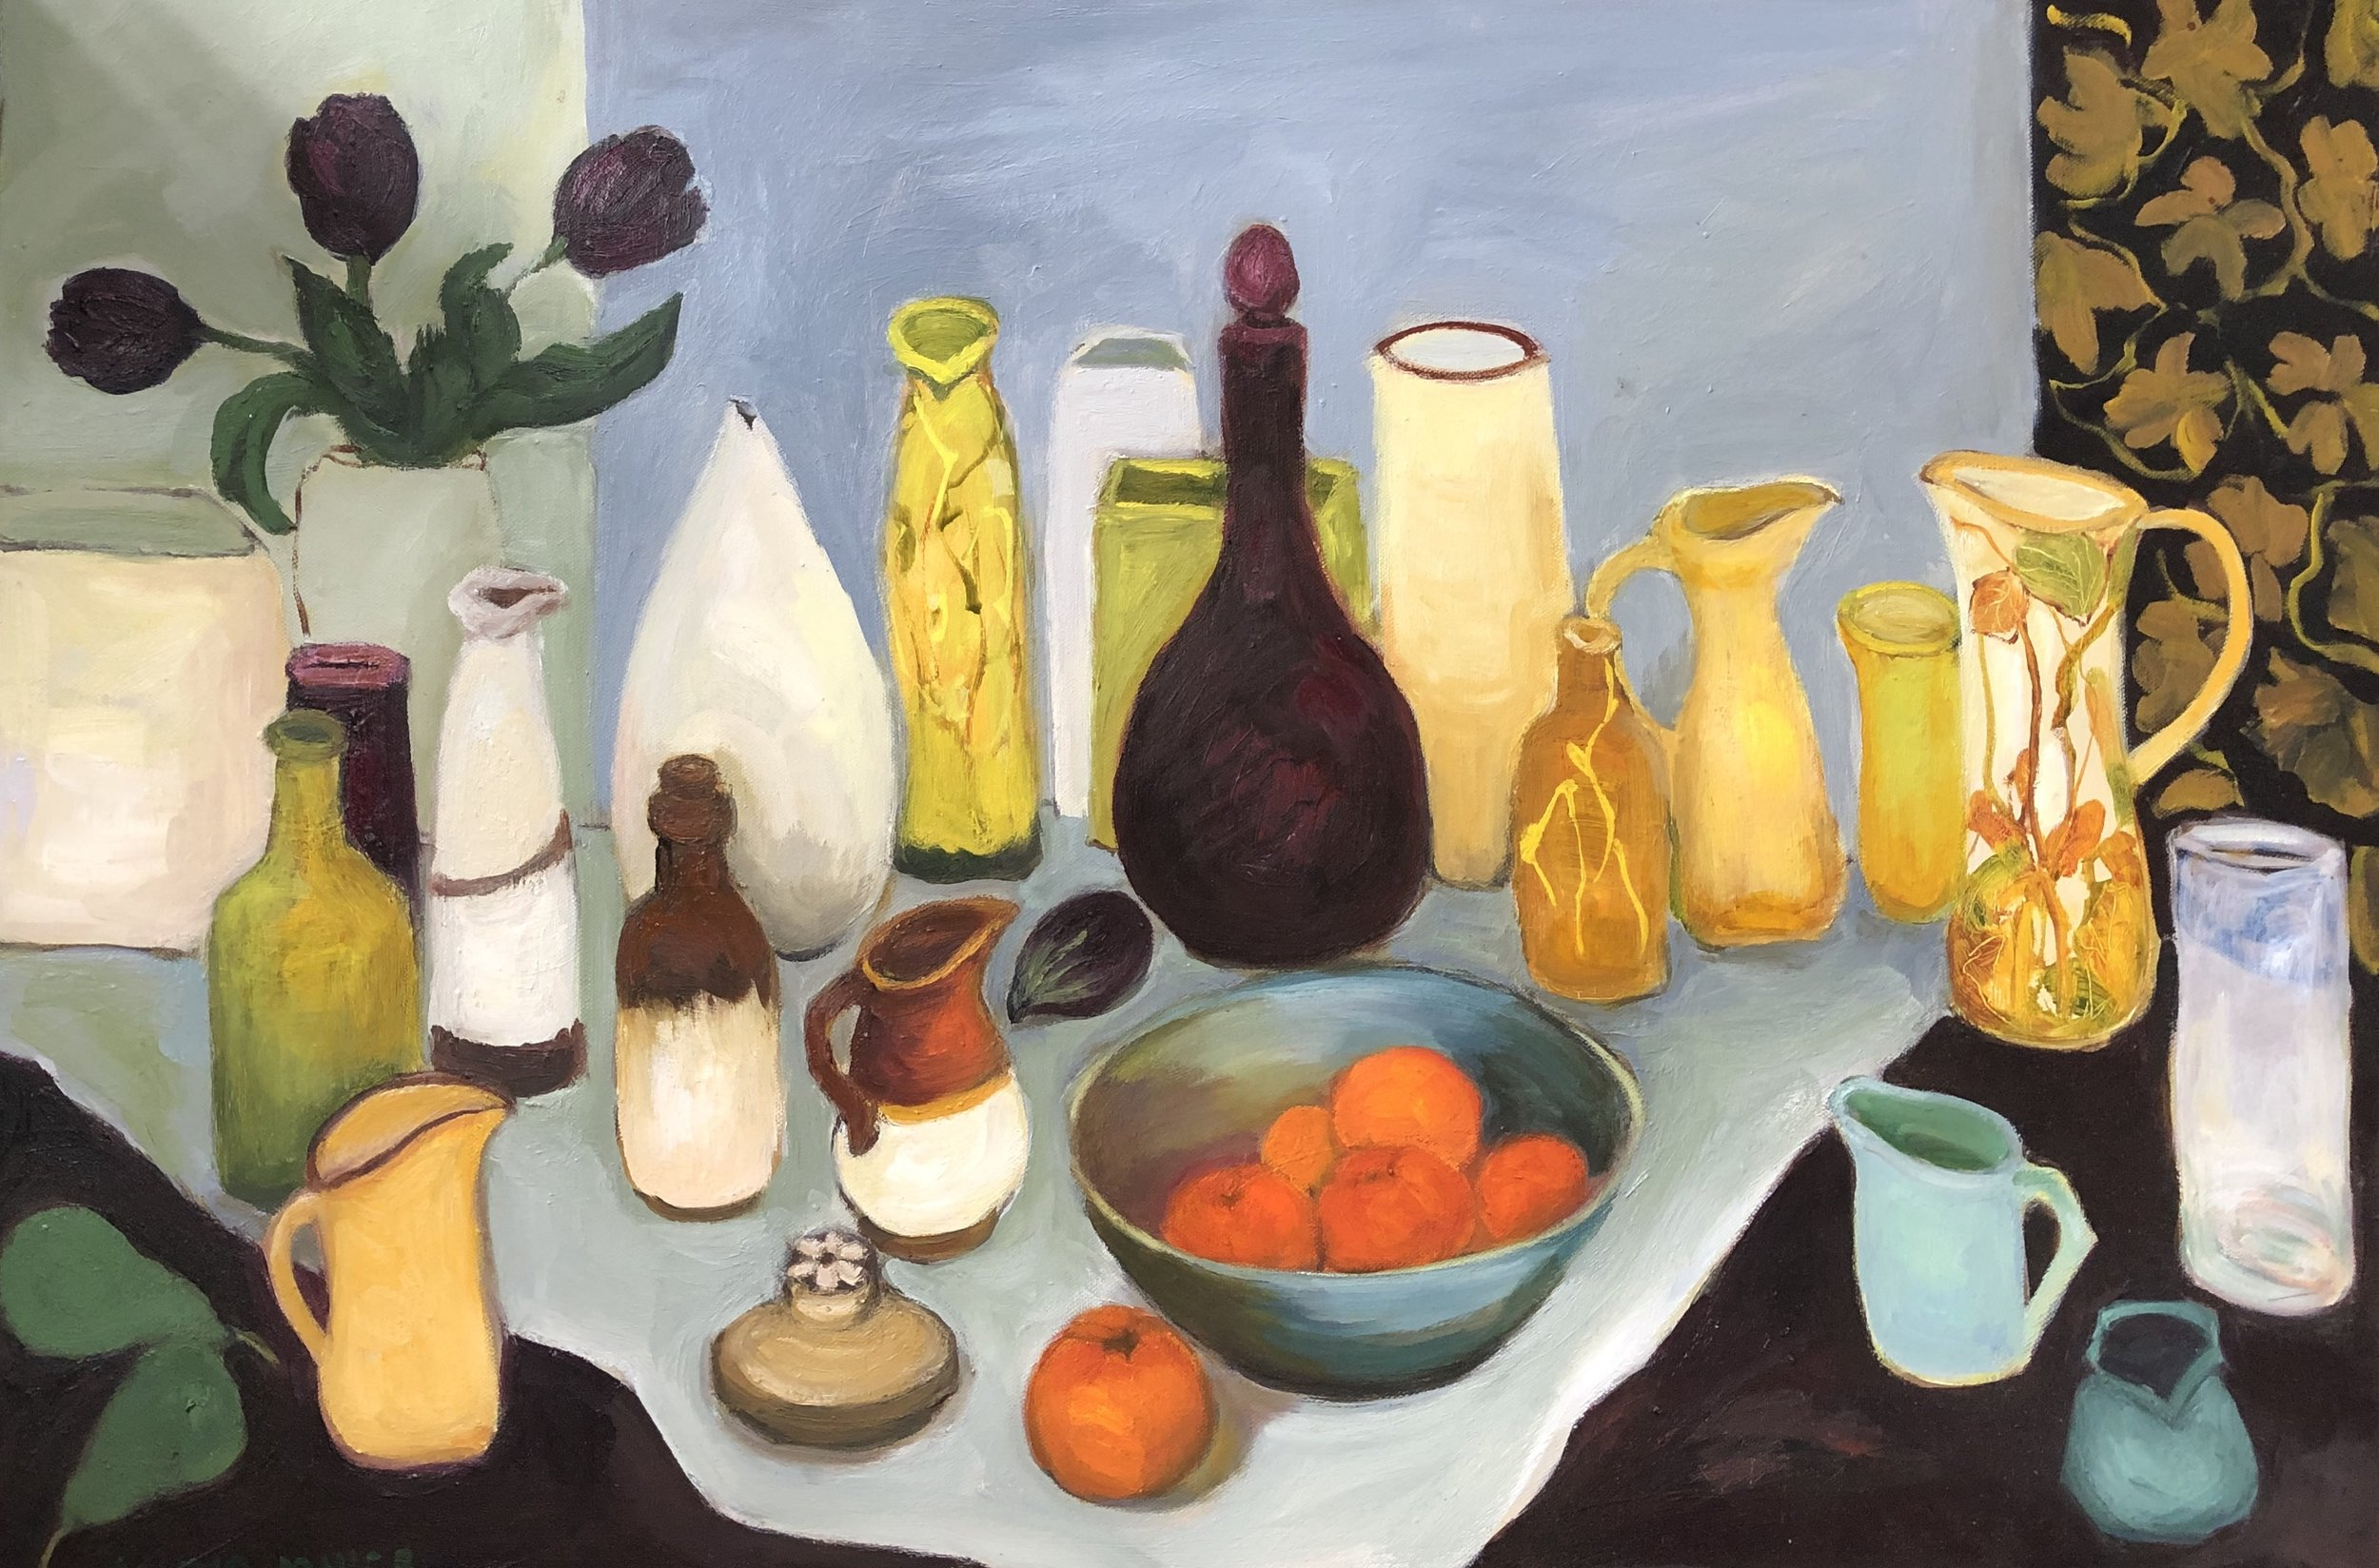 Lydia Miller, Still-Life with mandarins, 2018 oil on canvas, 60 x 91cm $920.00 AVAILABLE contact info@gallery139.com.au